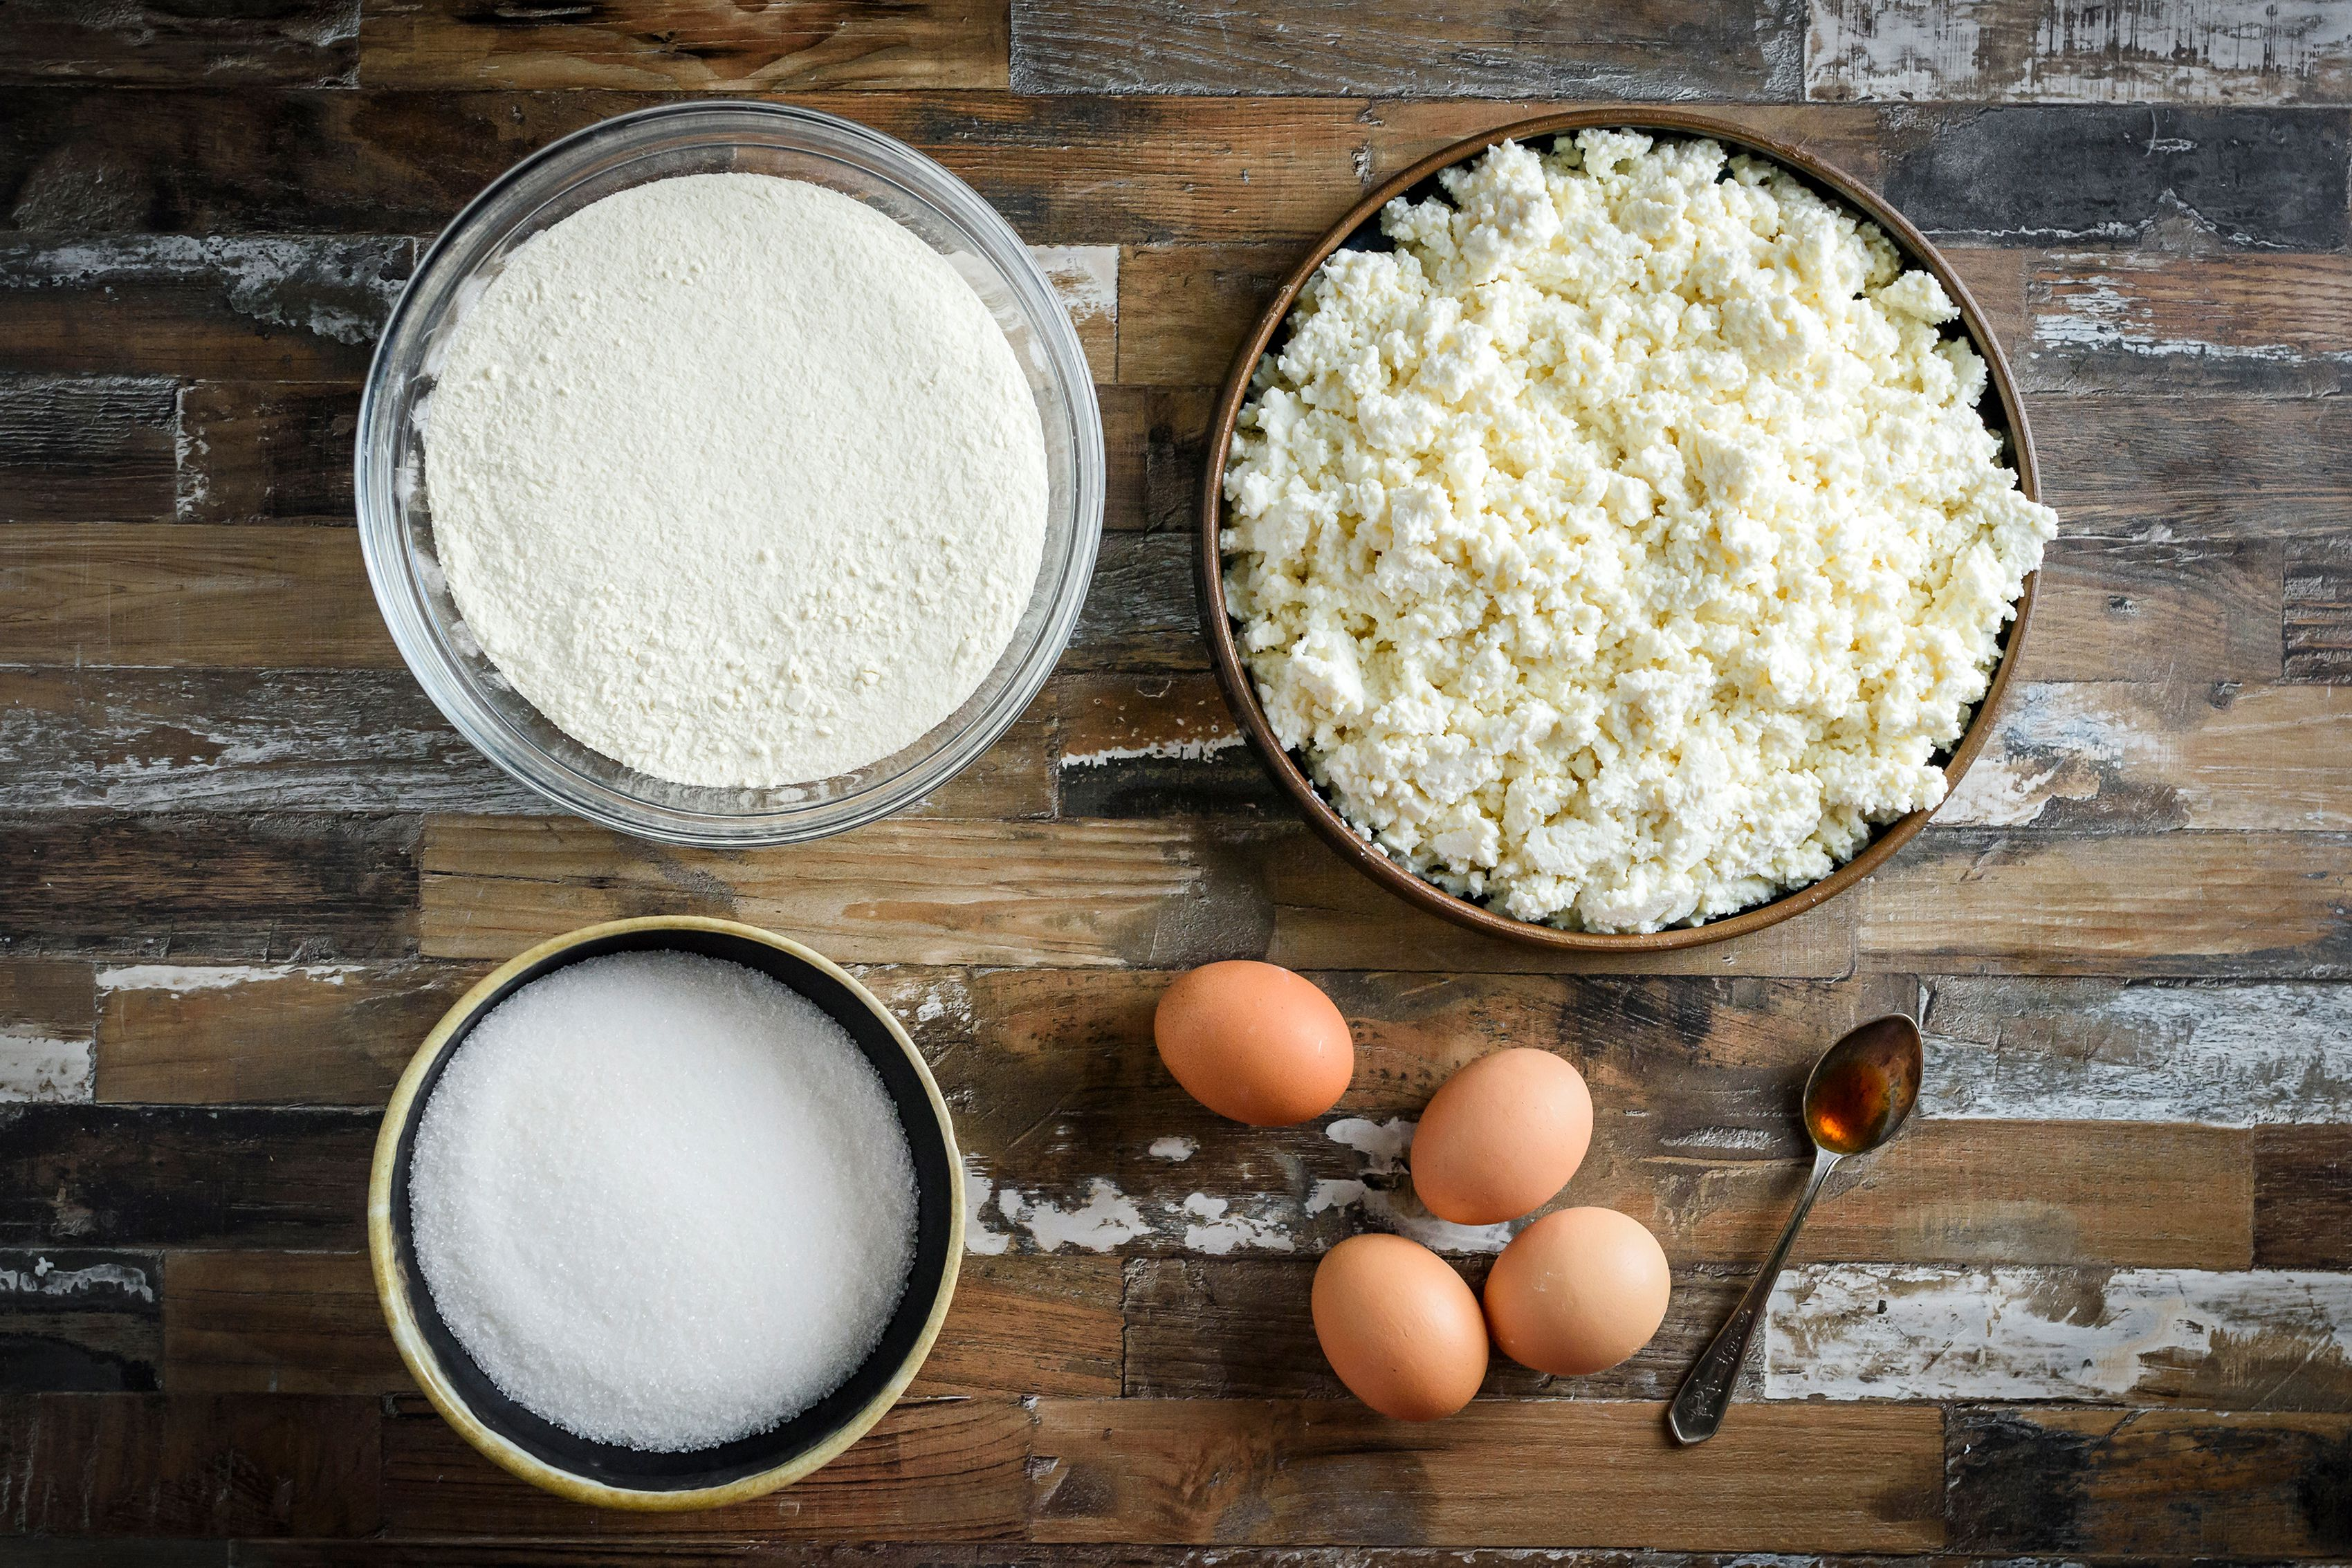 Ingredients for ricotta cake